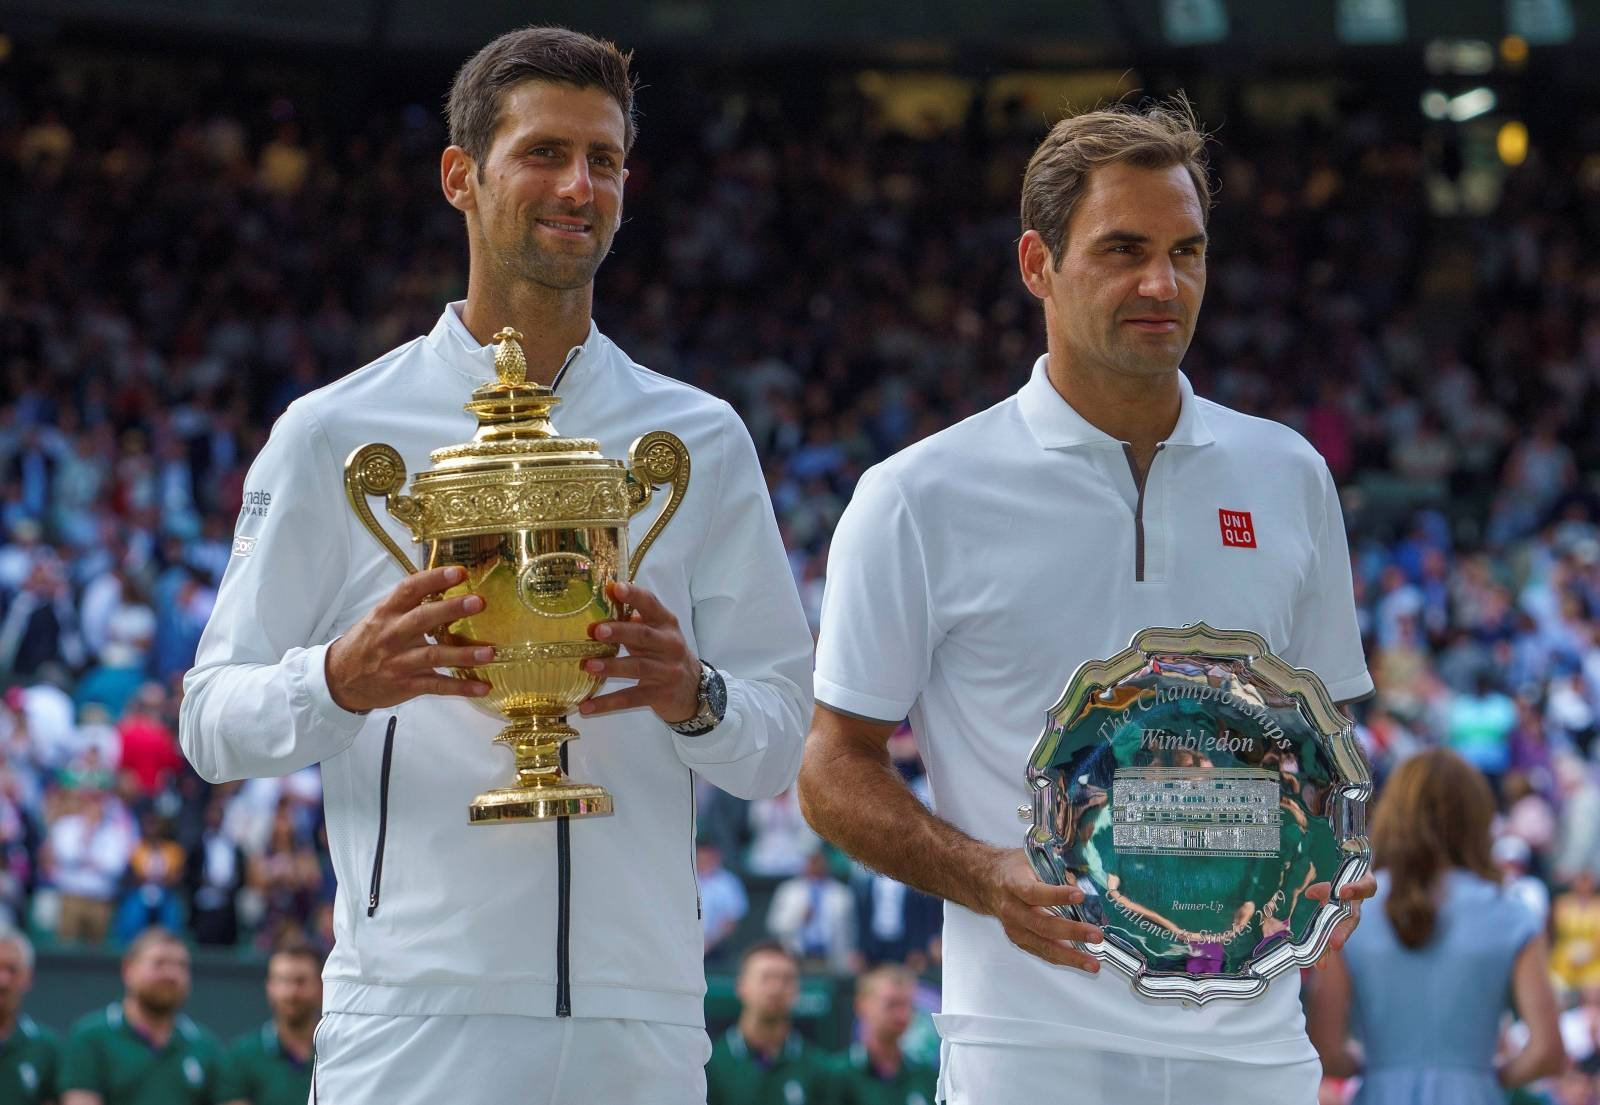 FILE PHOTO: Tennis: Wimbledon